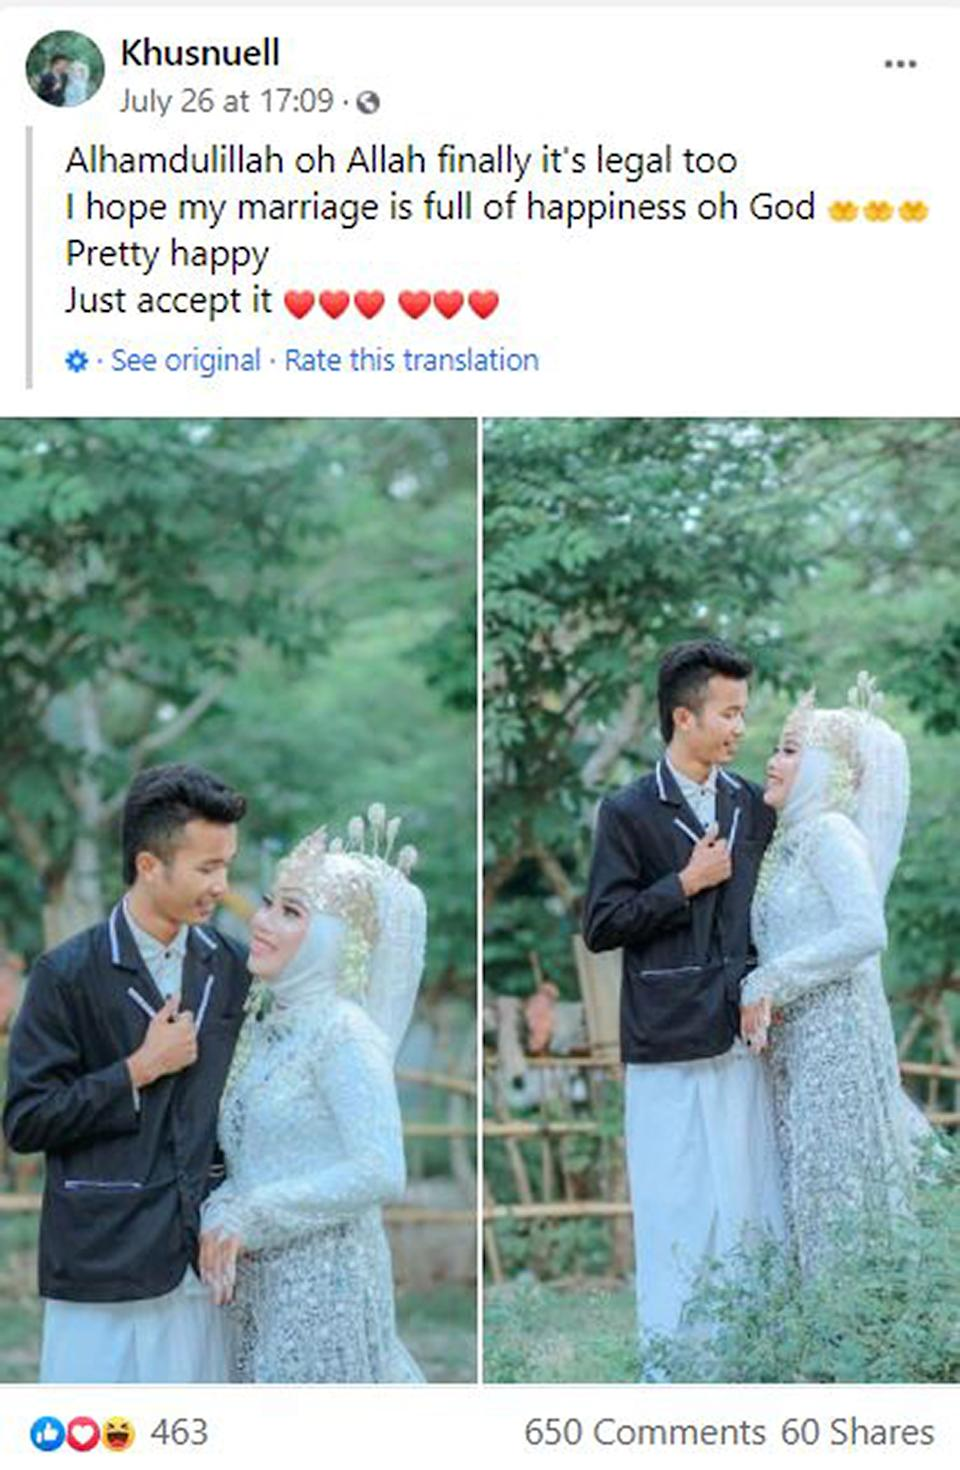 A Facebook post by one of the brides urging everyone to 'just accept it' after the wedding. Source: Newsflash/Australscope